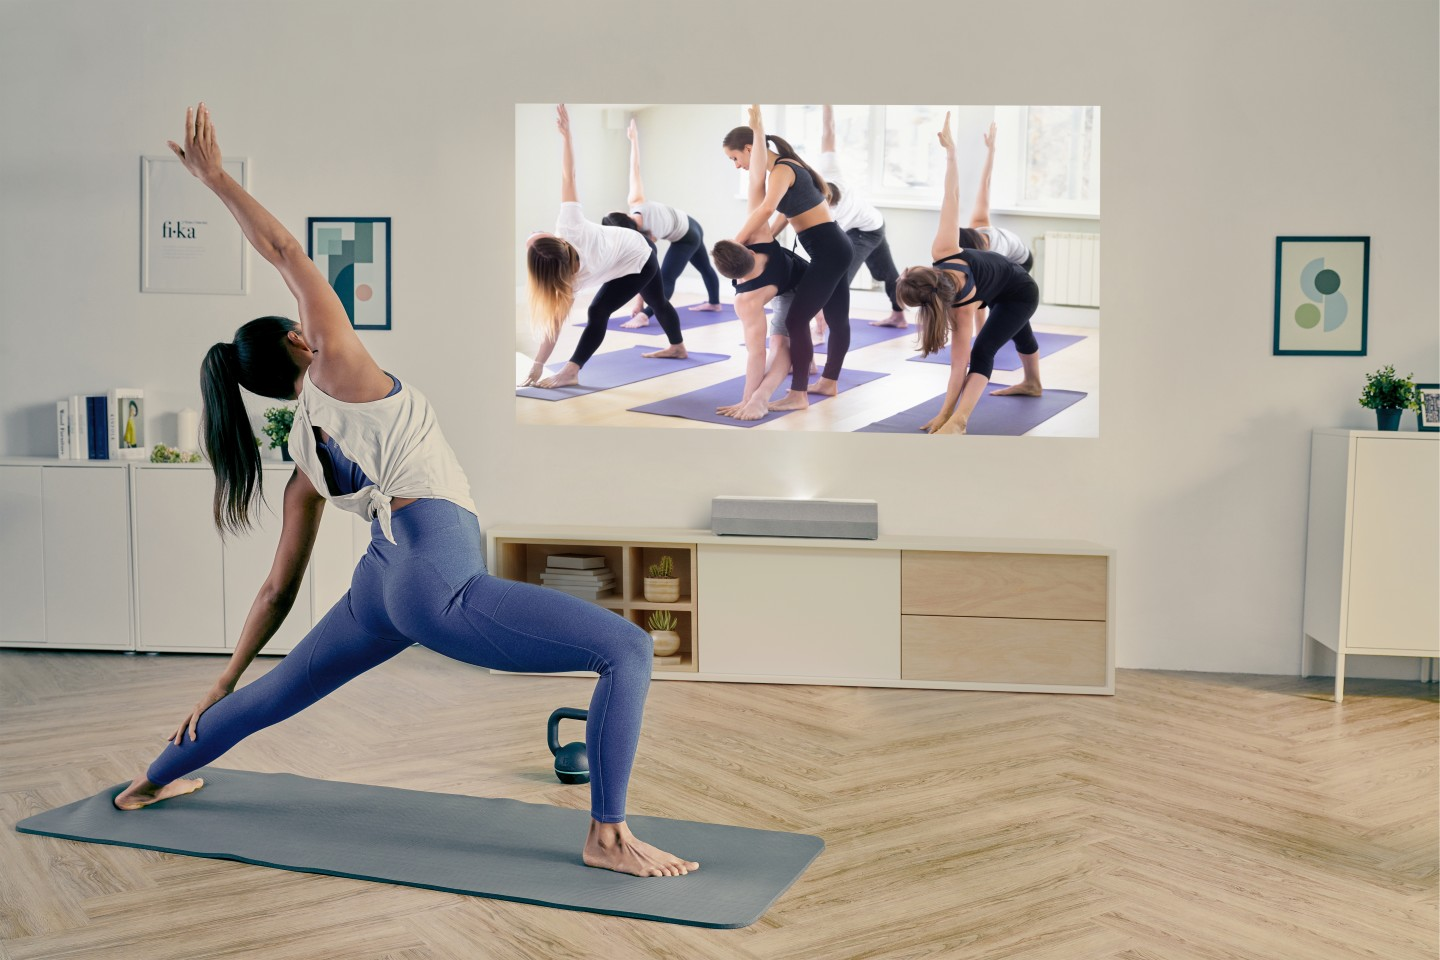 The CinemaX P2 can mirror content from a smartphone, such as a streamed yoga lesson